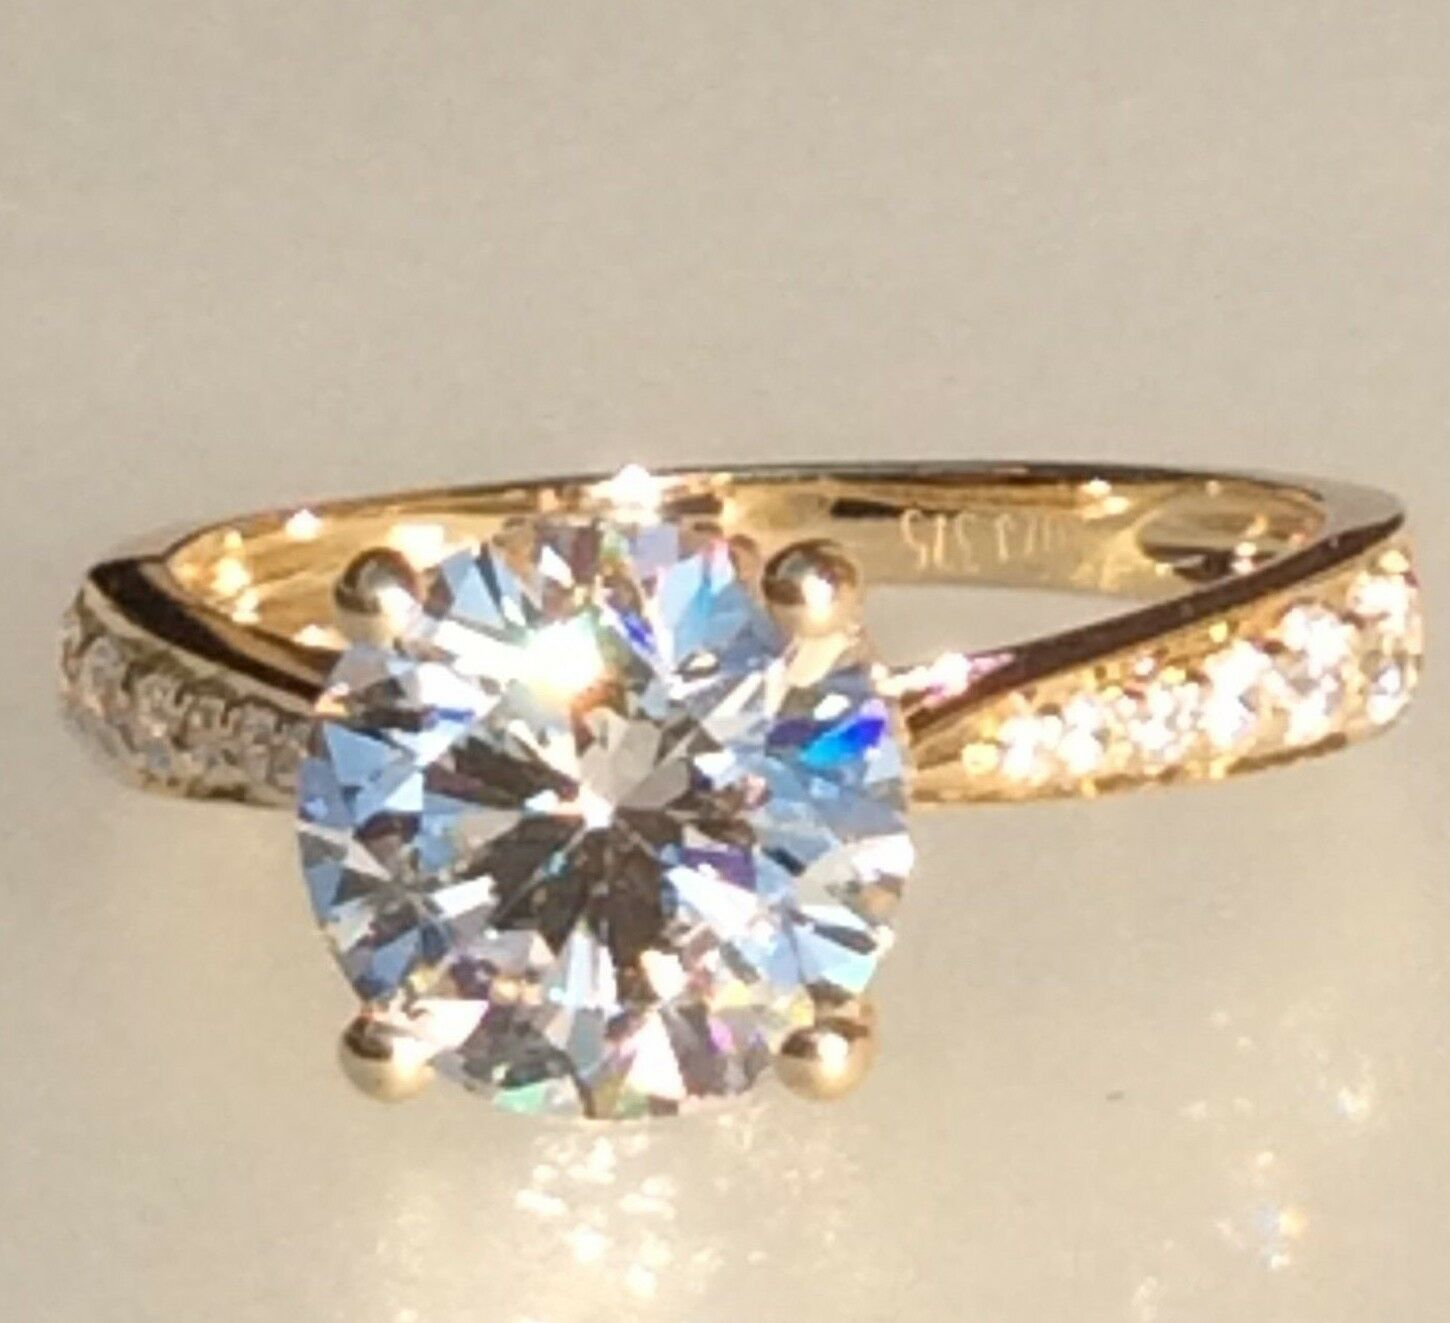 Engagement ring gold  2.5ct simulated diamond engagement ring in 9K yellow gold